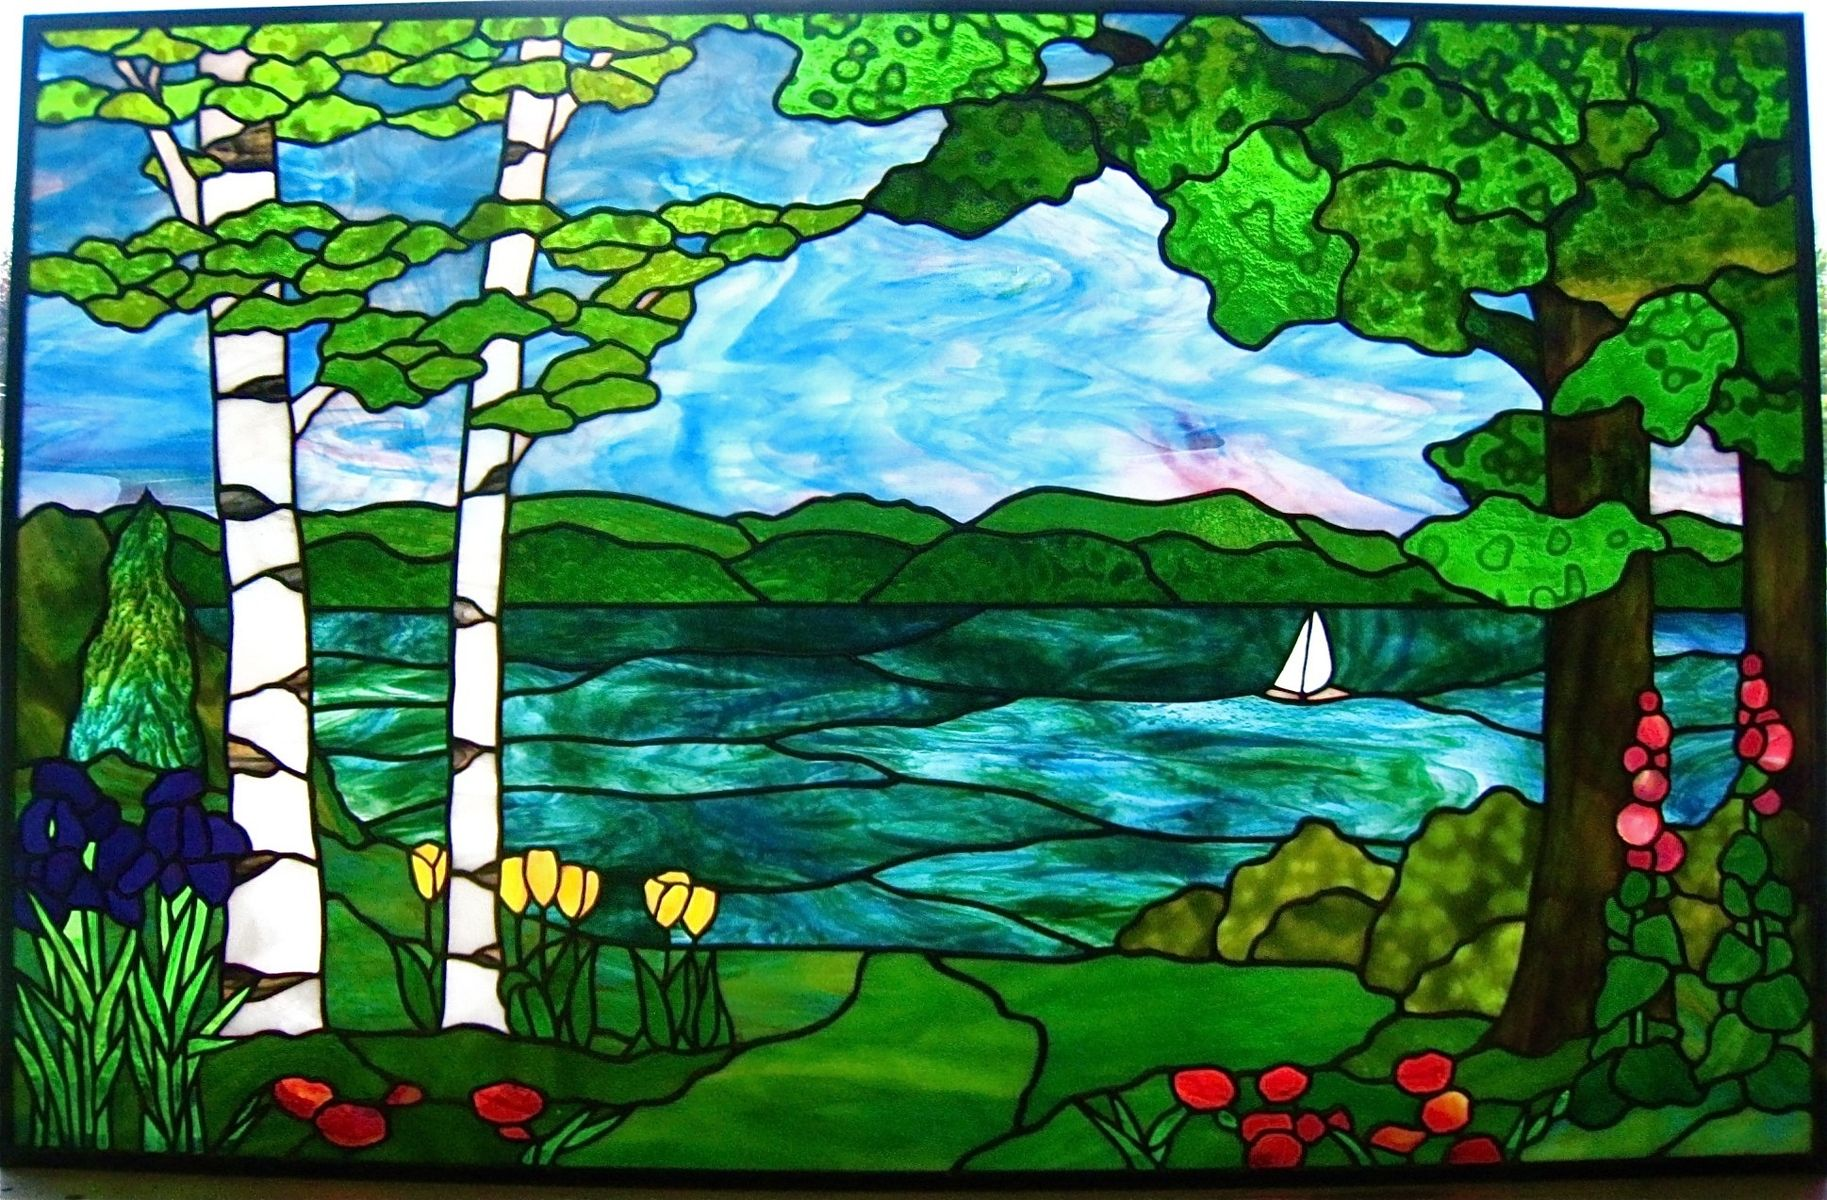 Stained Glass Landscape Geneva Landscape By Gilbertson S Stained Glass Studio Custommade Com Stained Glass Glass Painting Designs Stained Glass Studio